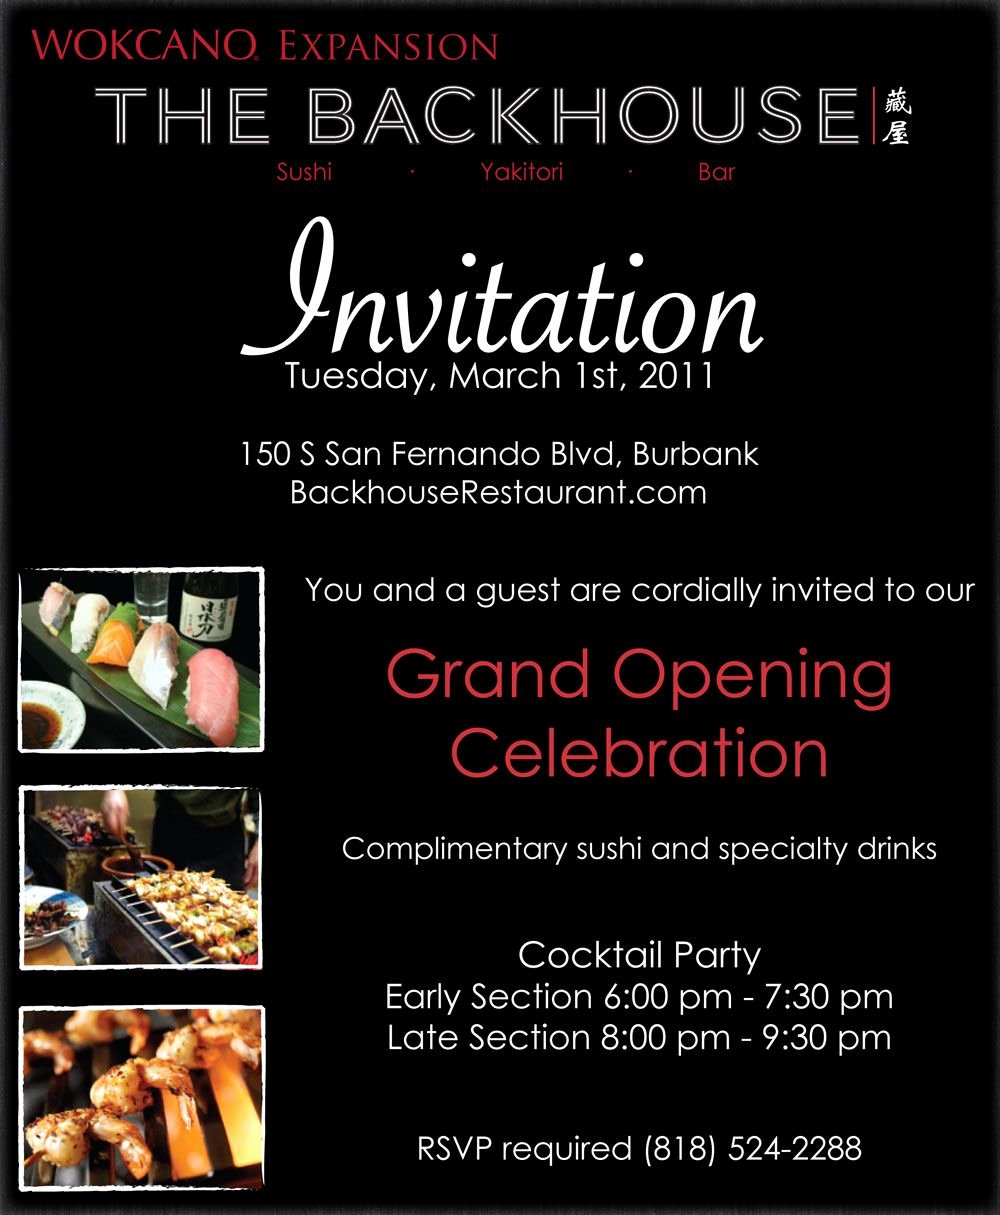 Restaurant Grand Opening Invitation Lovely Restaurant Inauguration Invitation Card Google Search Restaurants & Cafe S